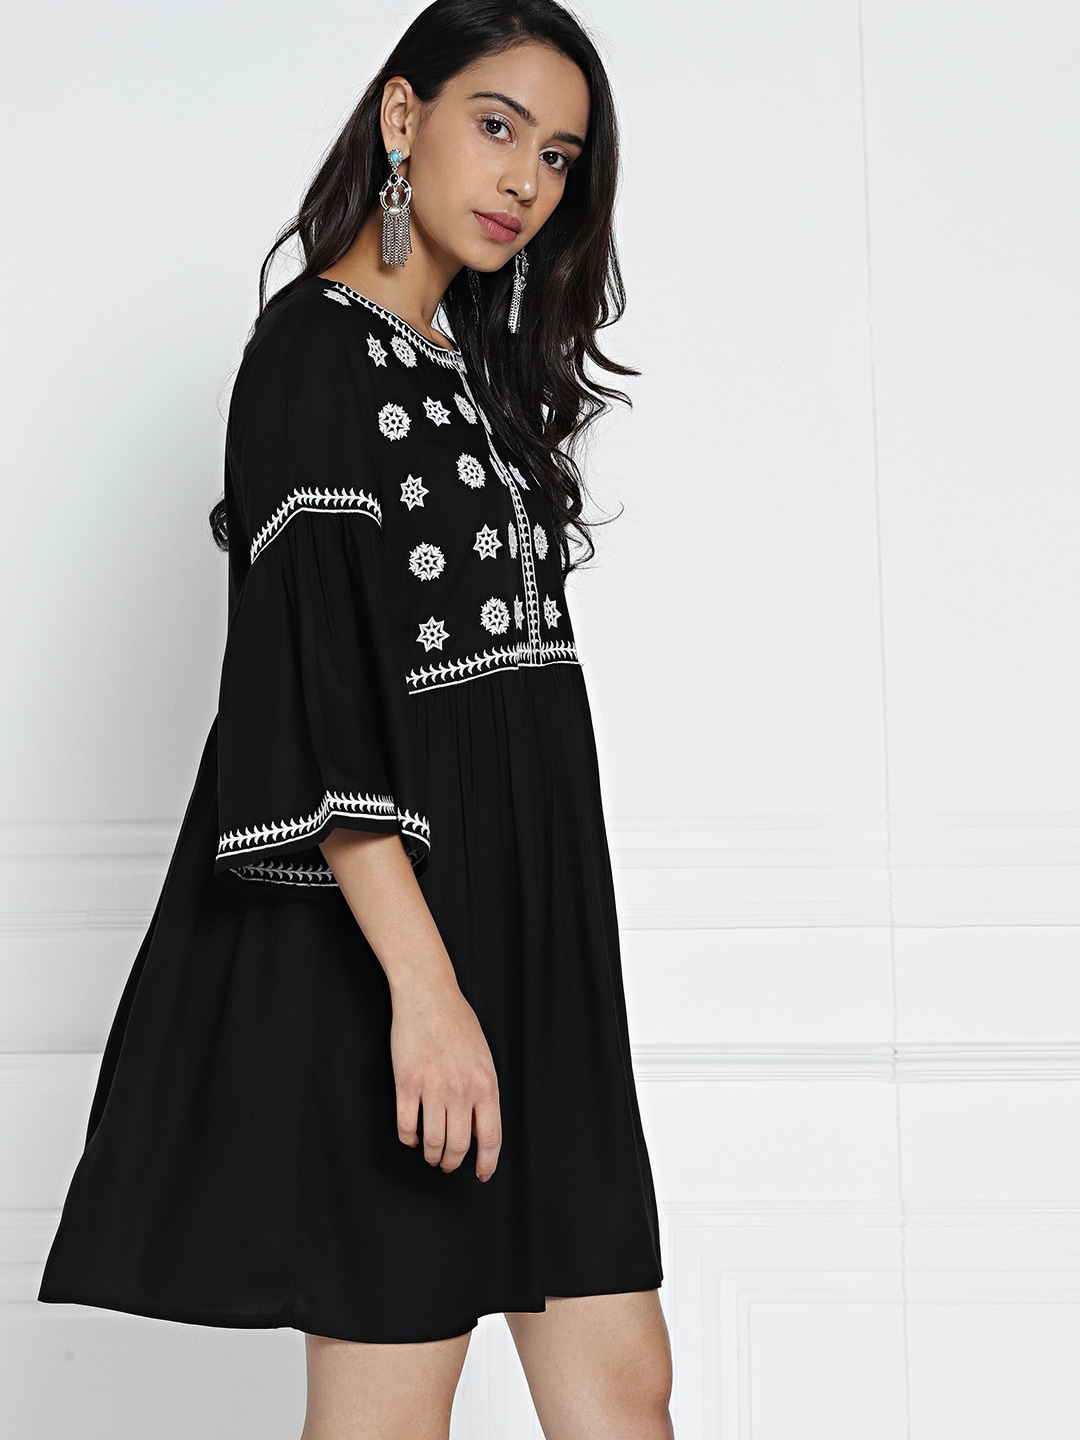 62693a5f021 All About You - Exclusive All About You Online Store in India at Myntra